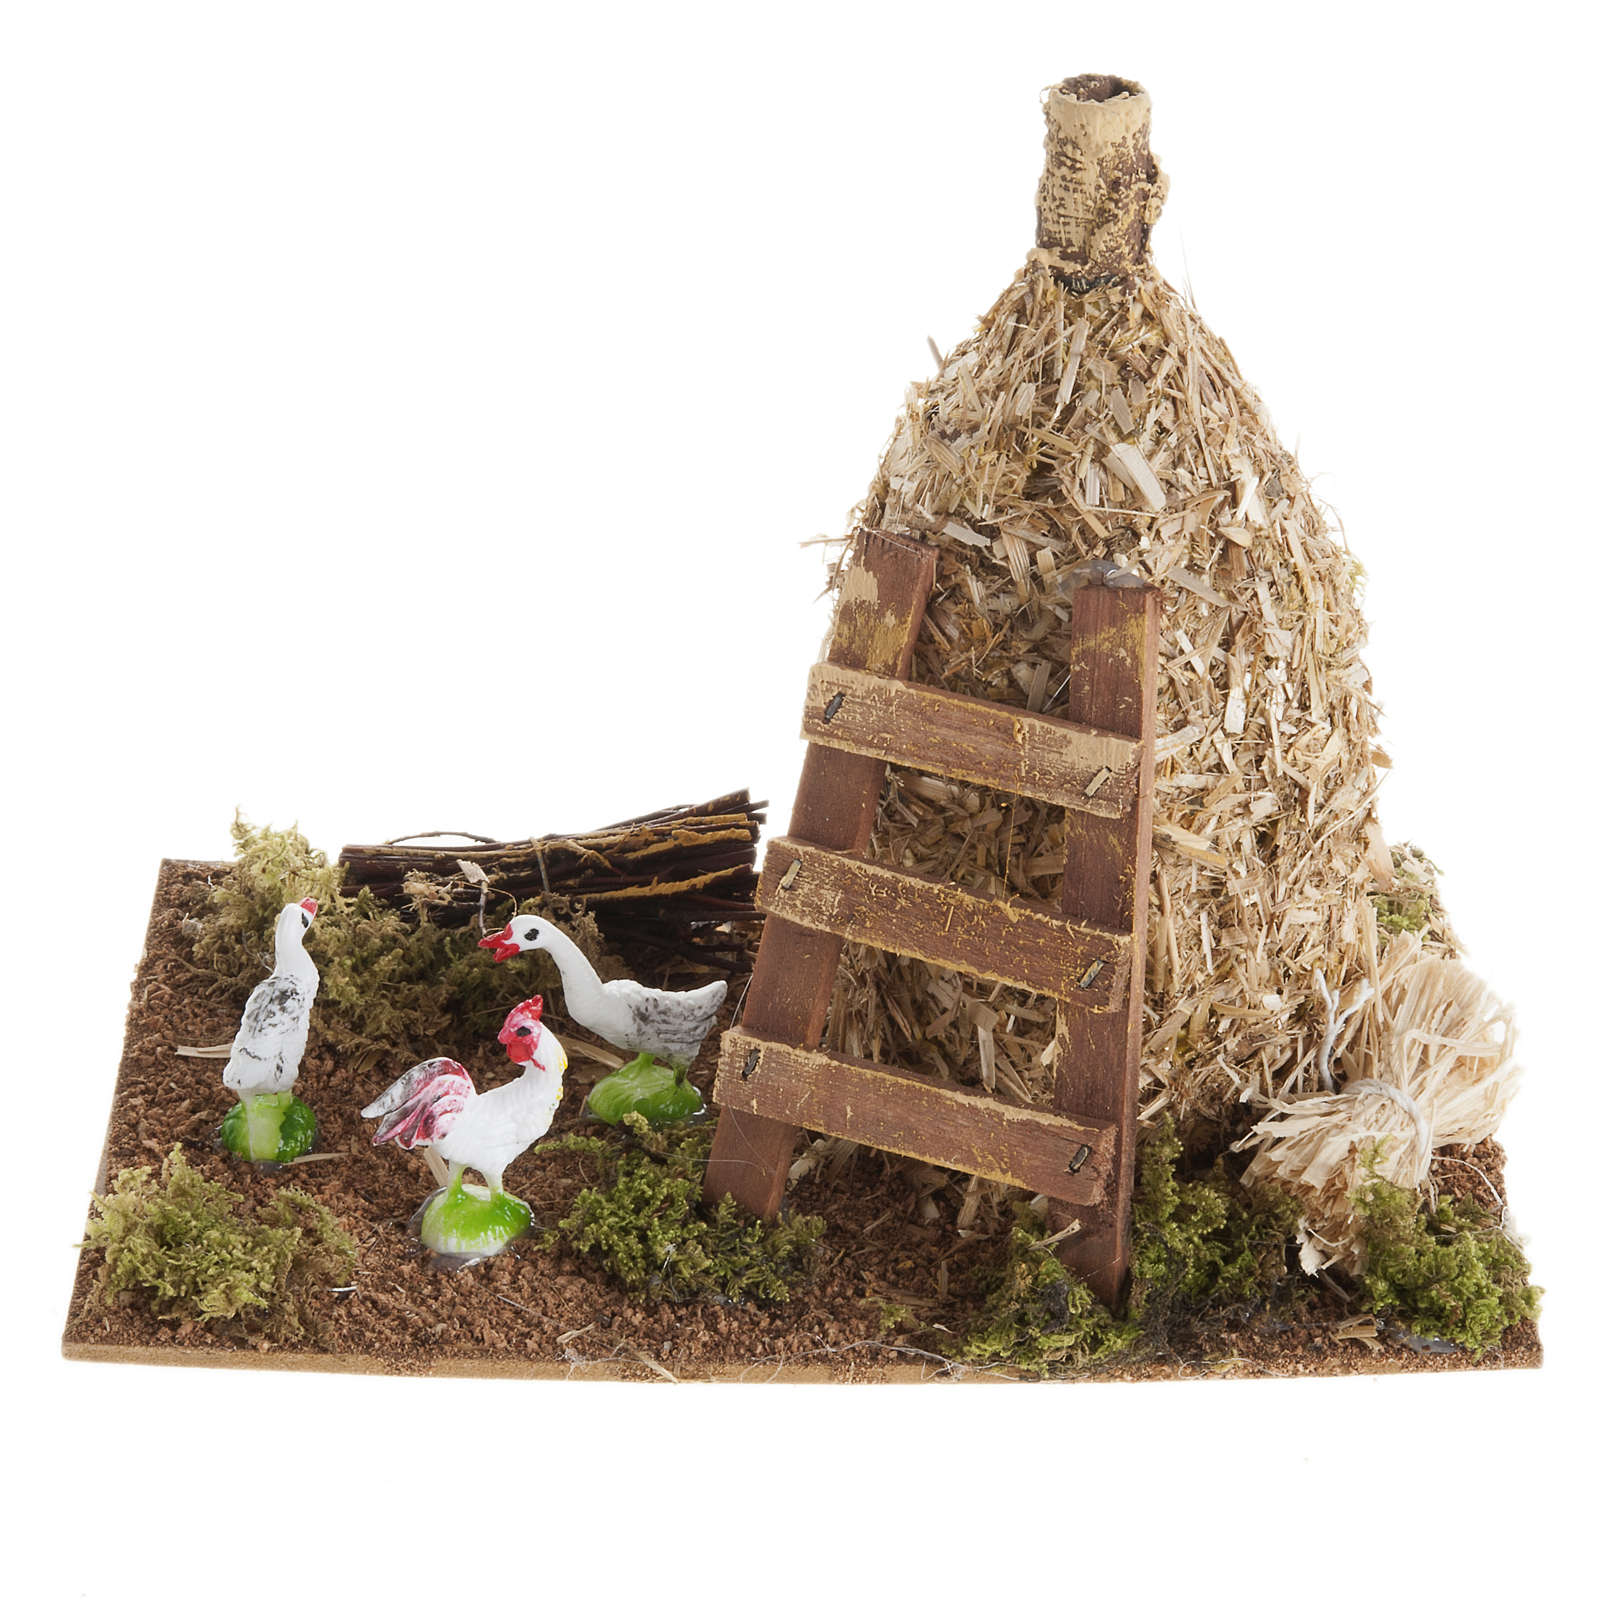 Nativity scene: sheaf of straw with poultry 3